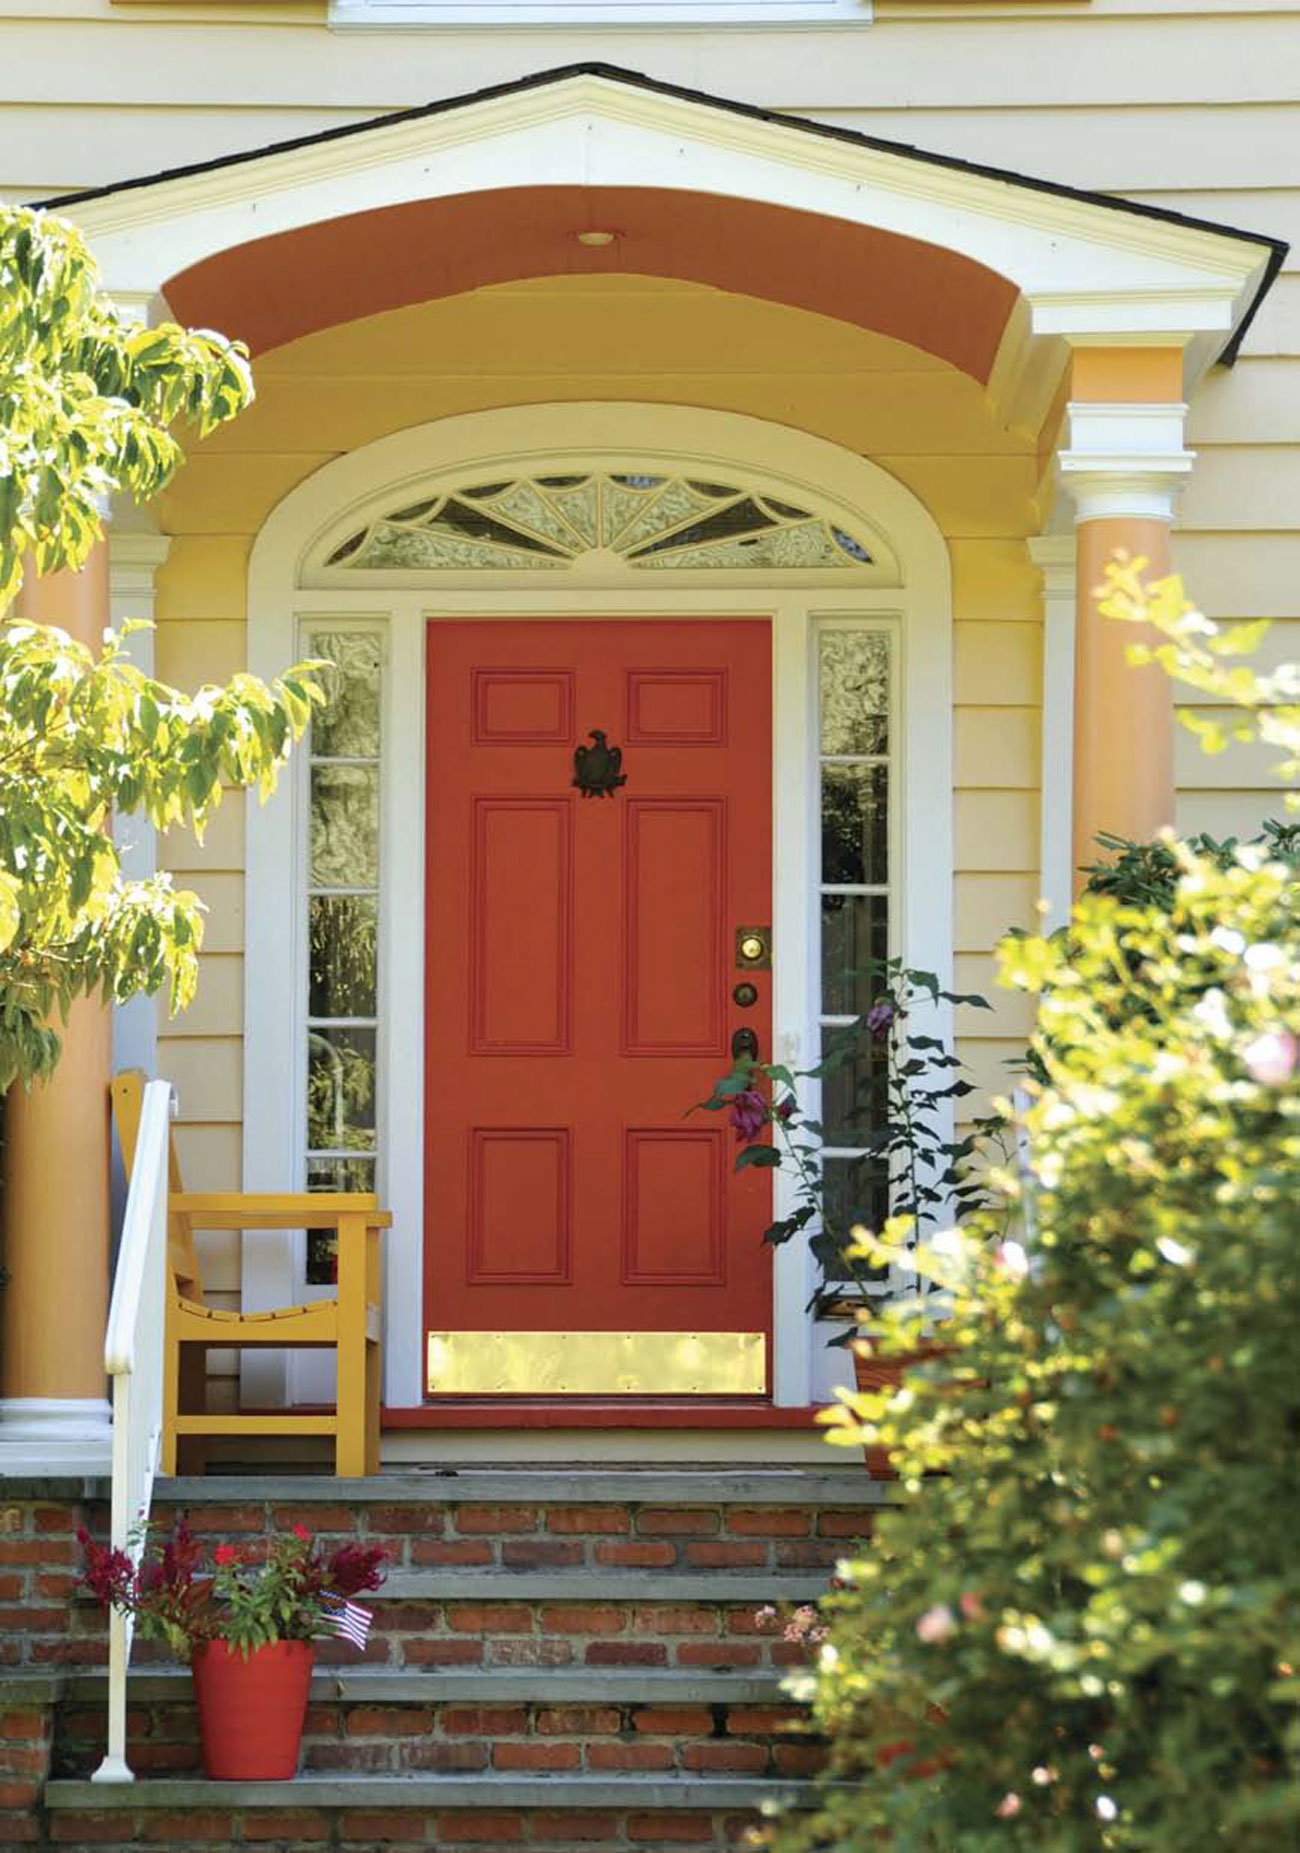 Brick front steps to a small porch with a red door surrounded by panes of glass.